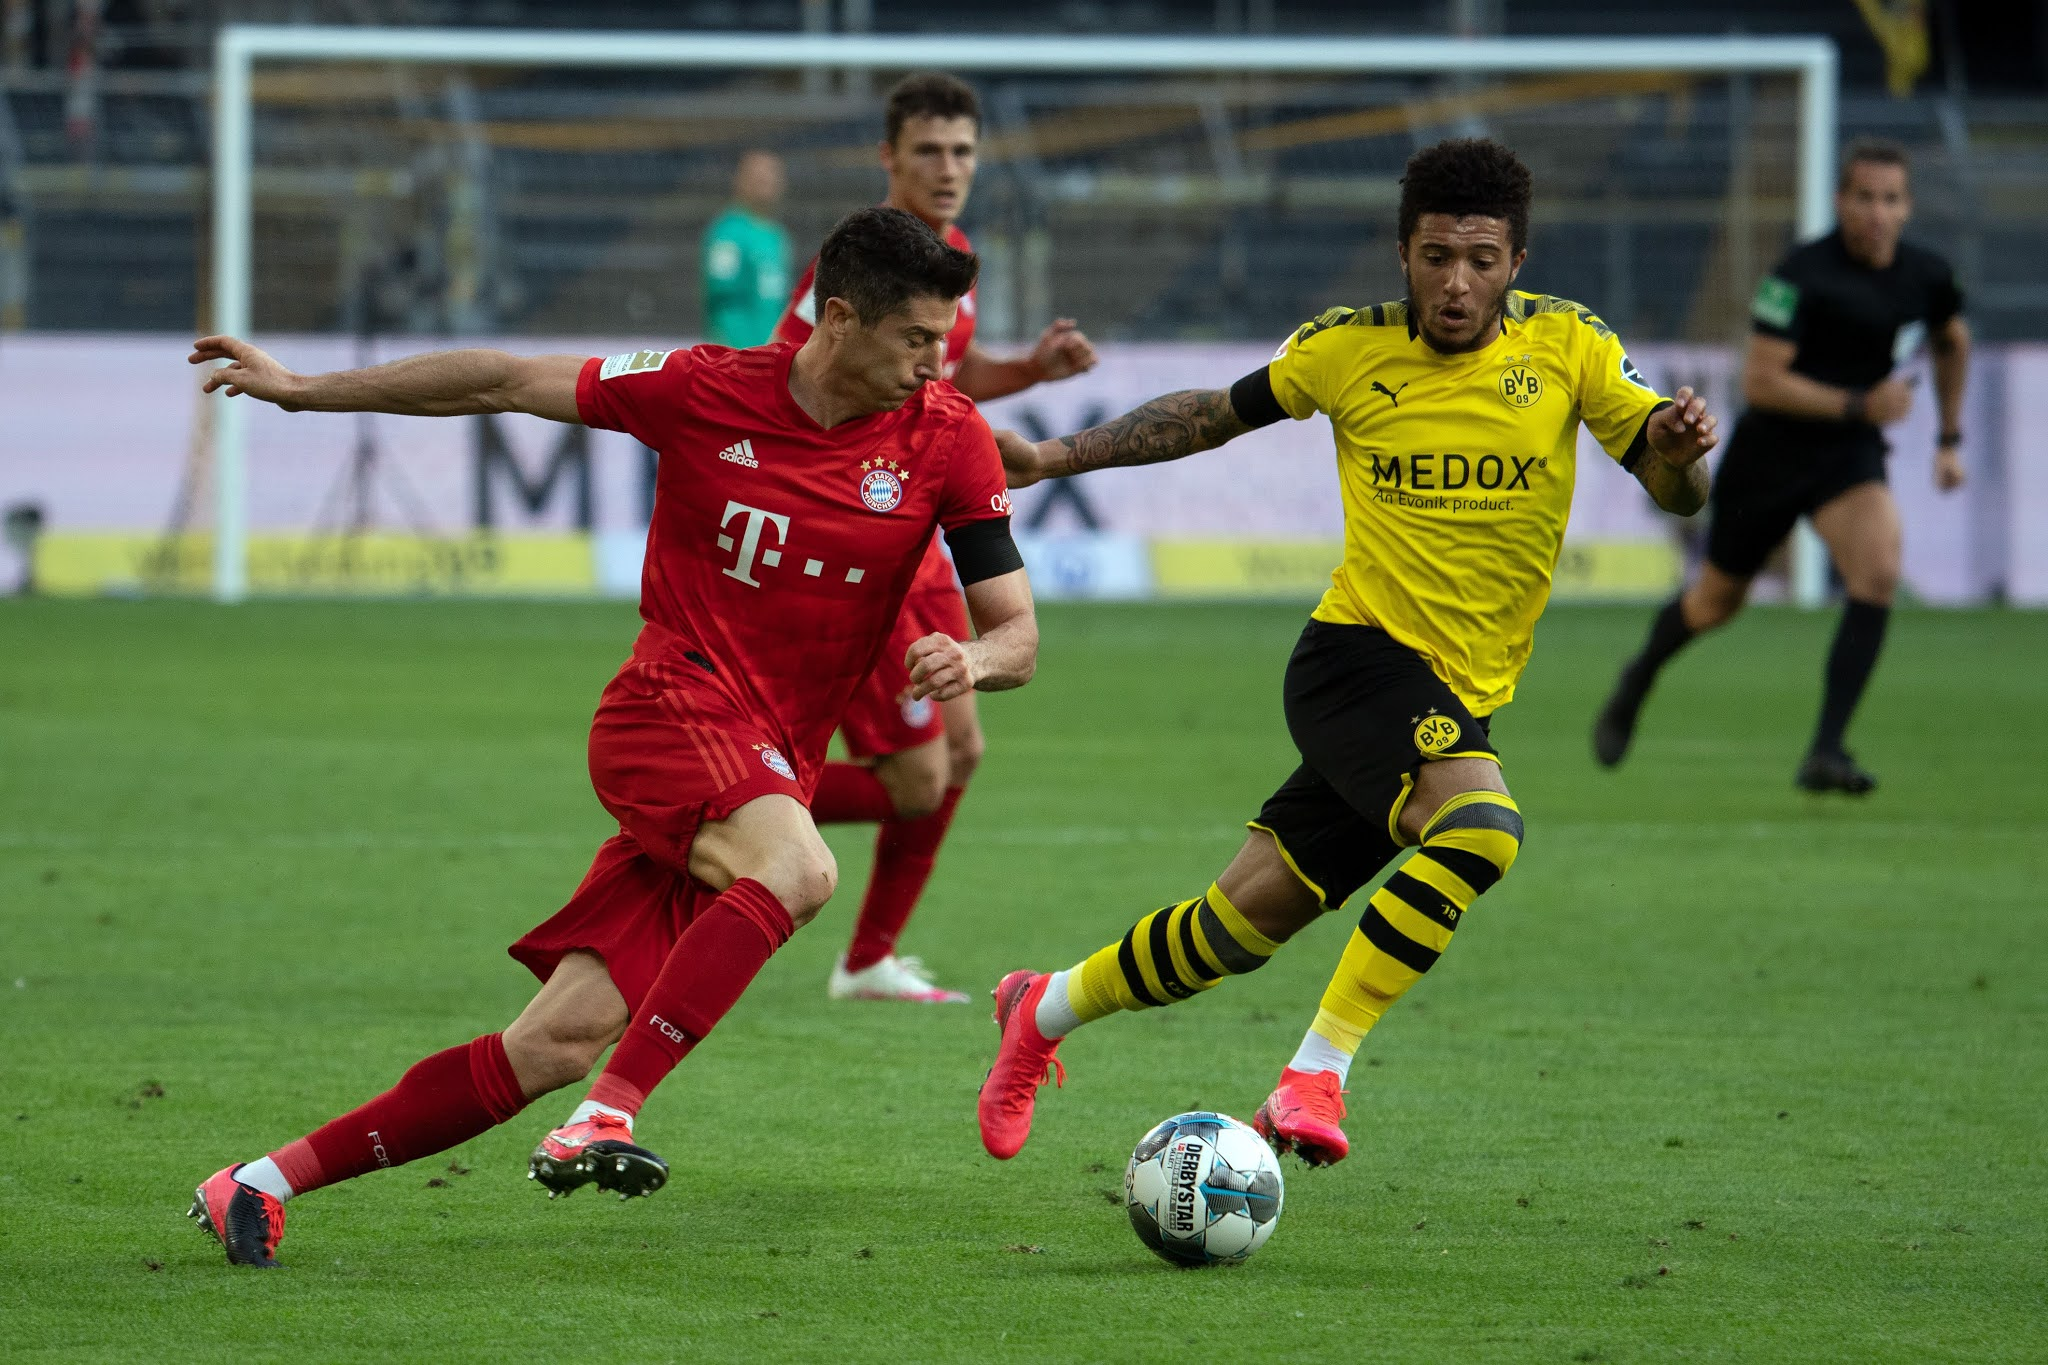 Robert Lewandowski e Jadon Sancho no último encontro entre Bayern e Dortmund pela Bundesliga (Photo by FEDERICO GAMBARINI/POOL/AFP via Getty Images)